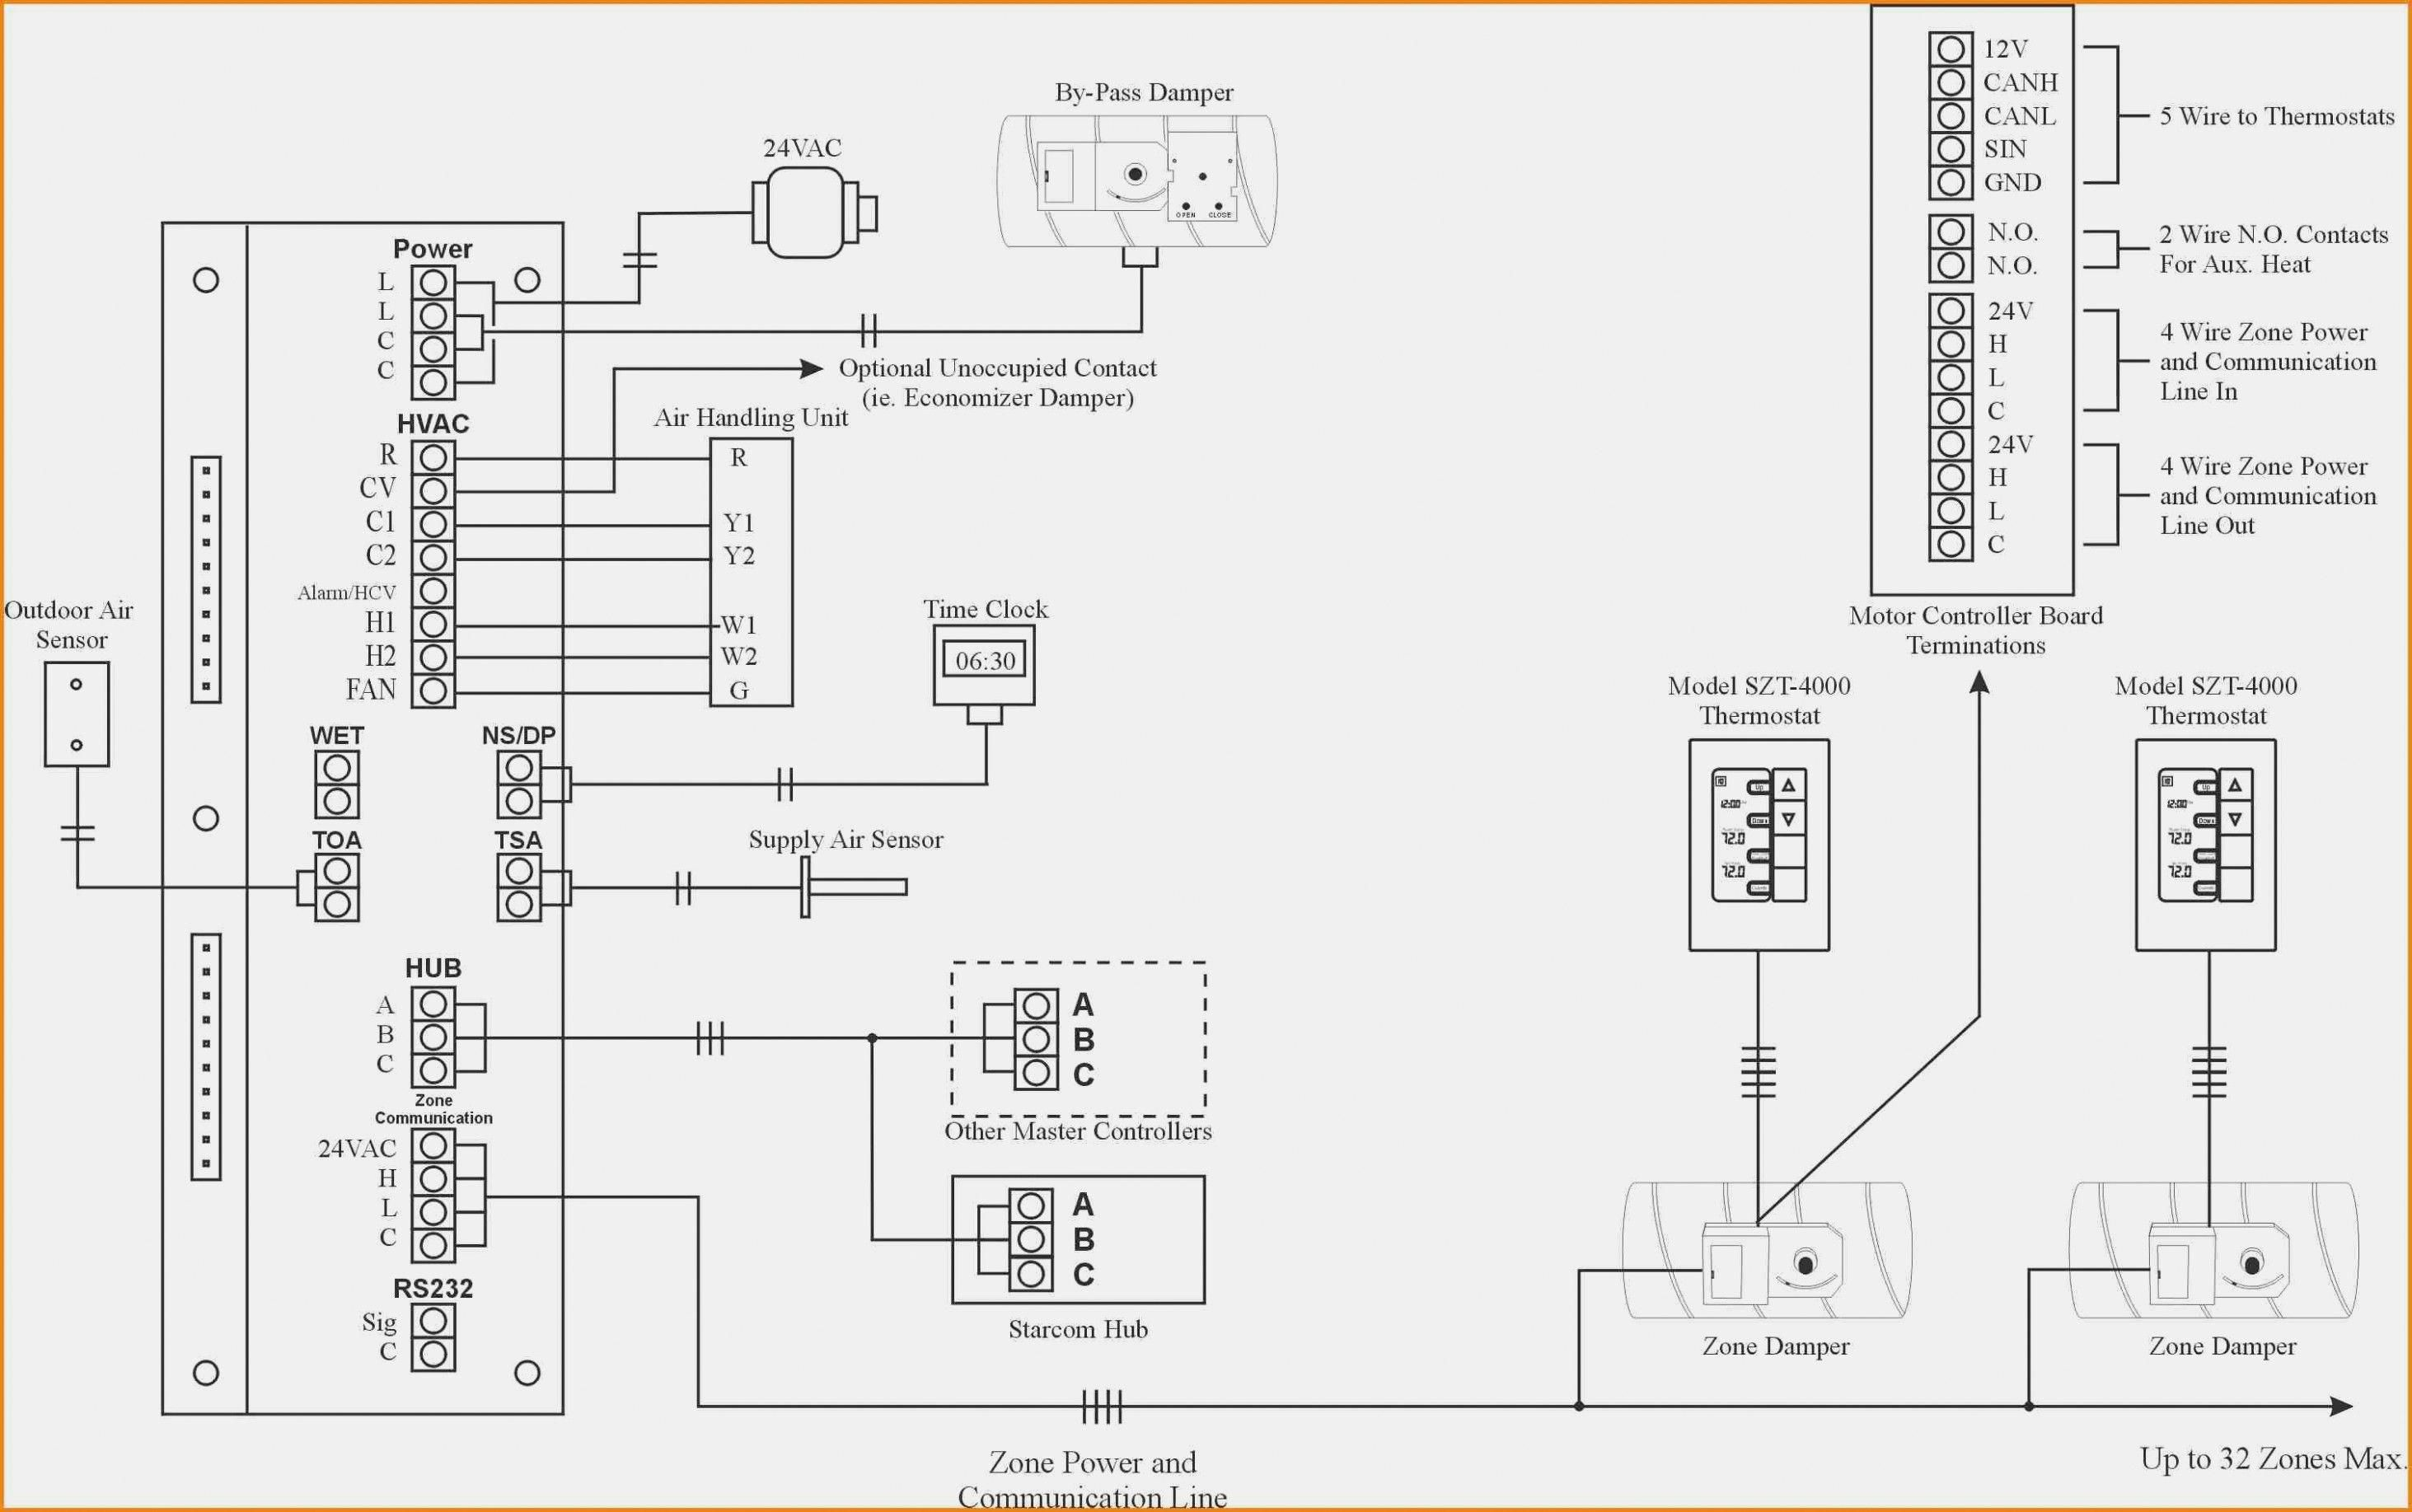 Wiring Diagram For Home Alarm System Diagram Diagramtemplate Diagramsample Securitycameras Homesecuritysystems H Home Security Systems Alarm System Diagram